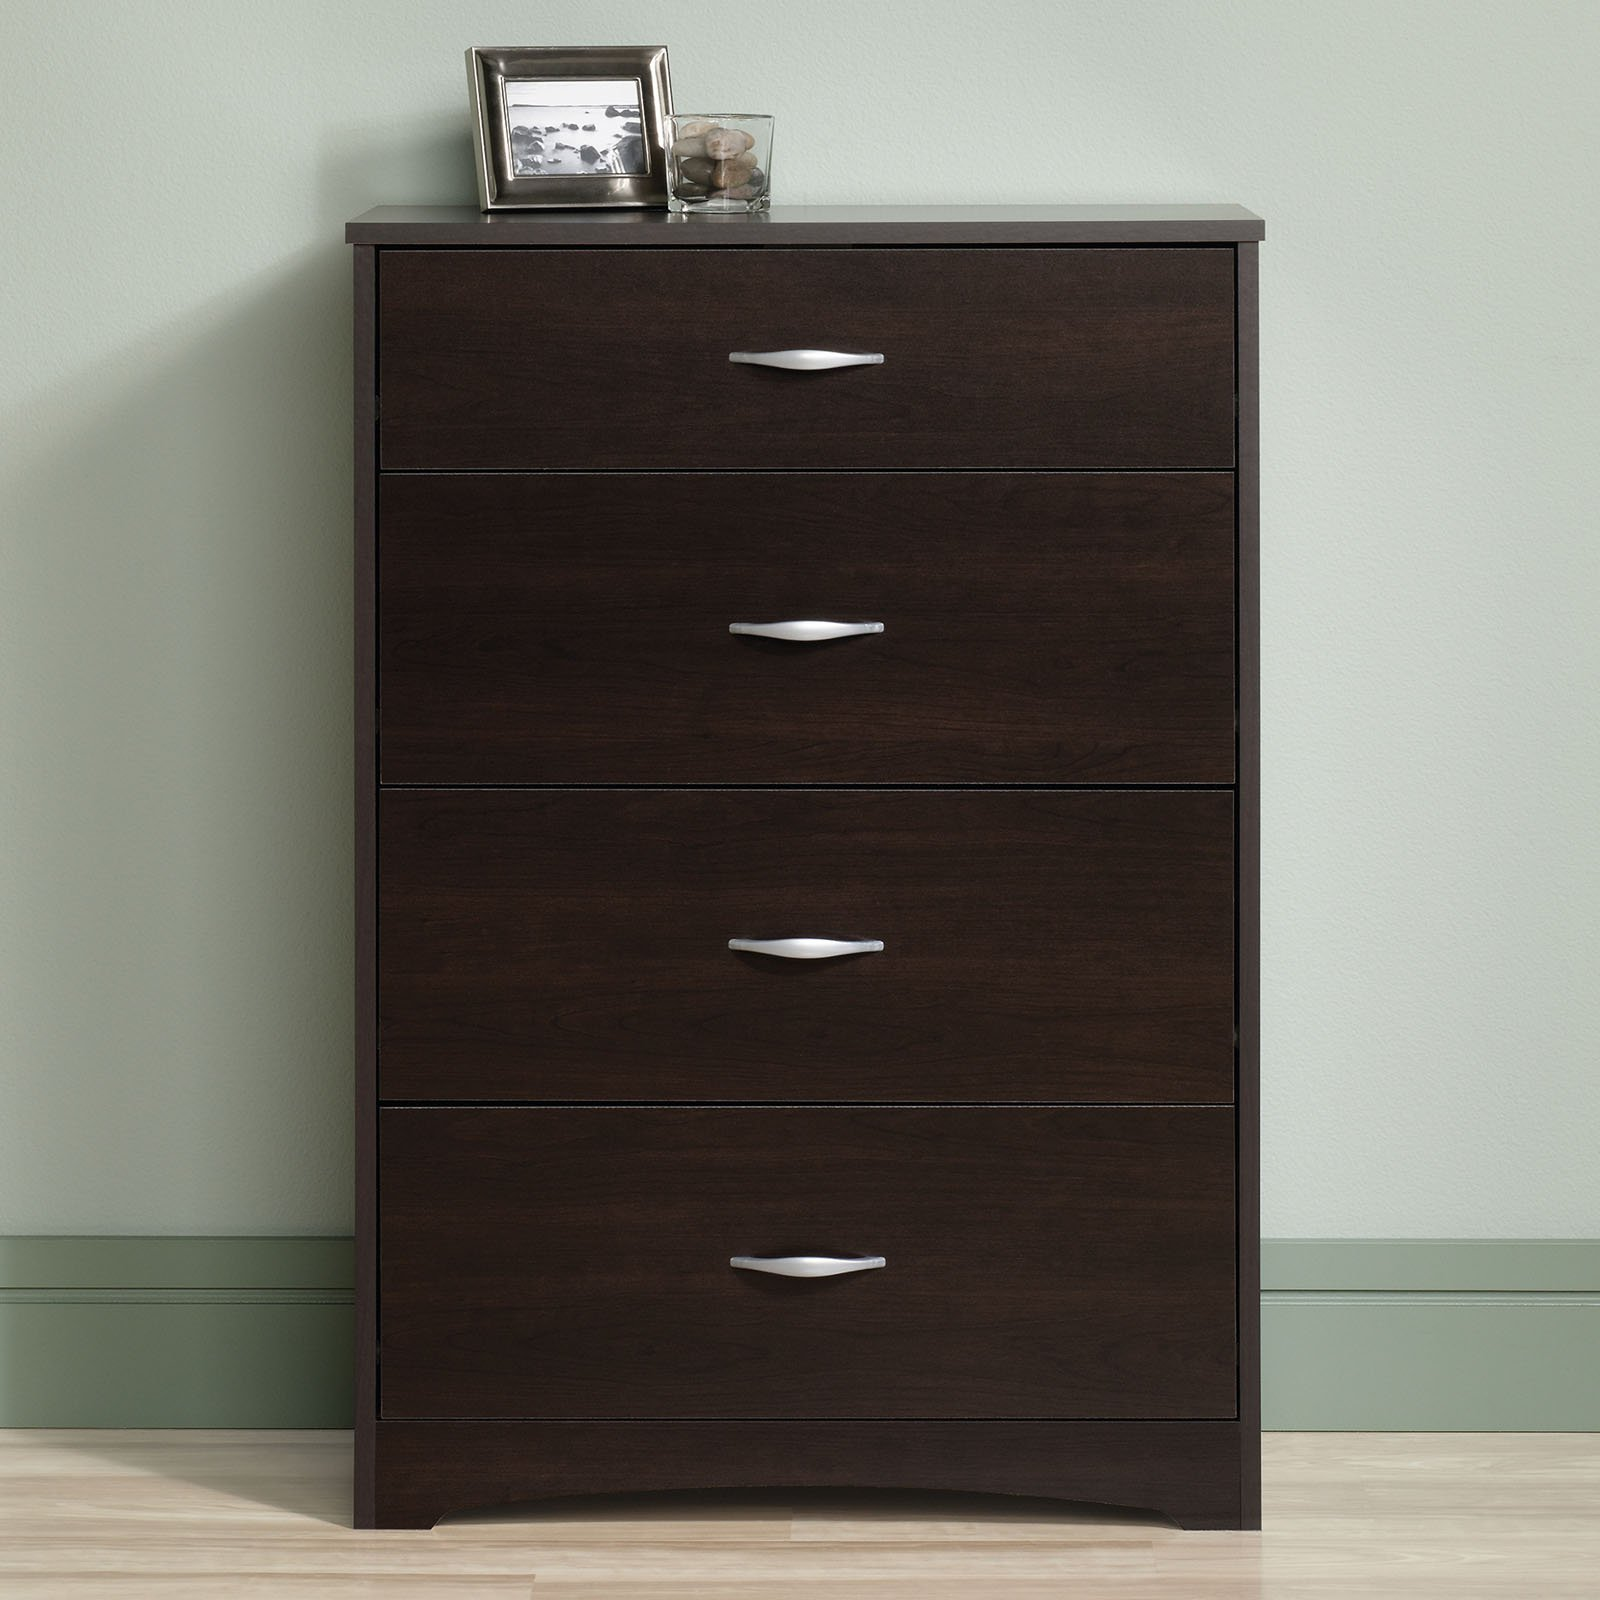 Picture of: Sauder 4 Drawer Chest Instructions